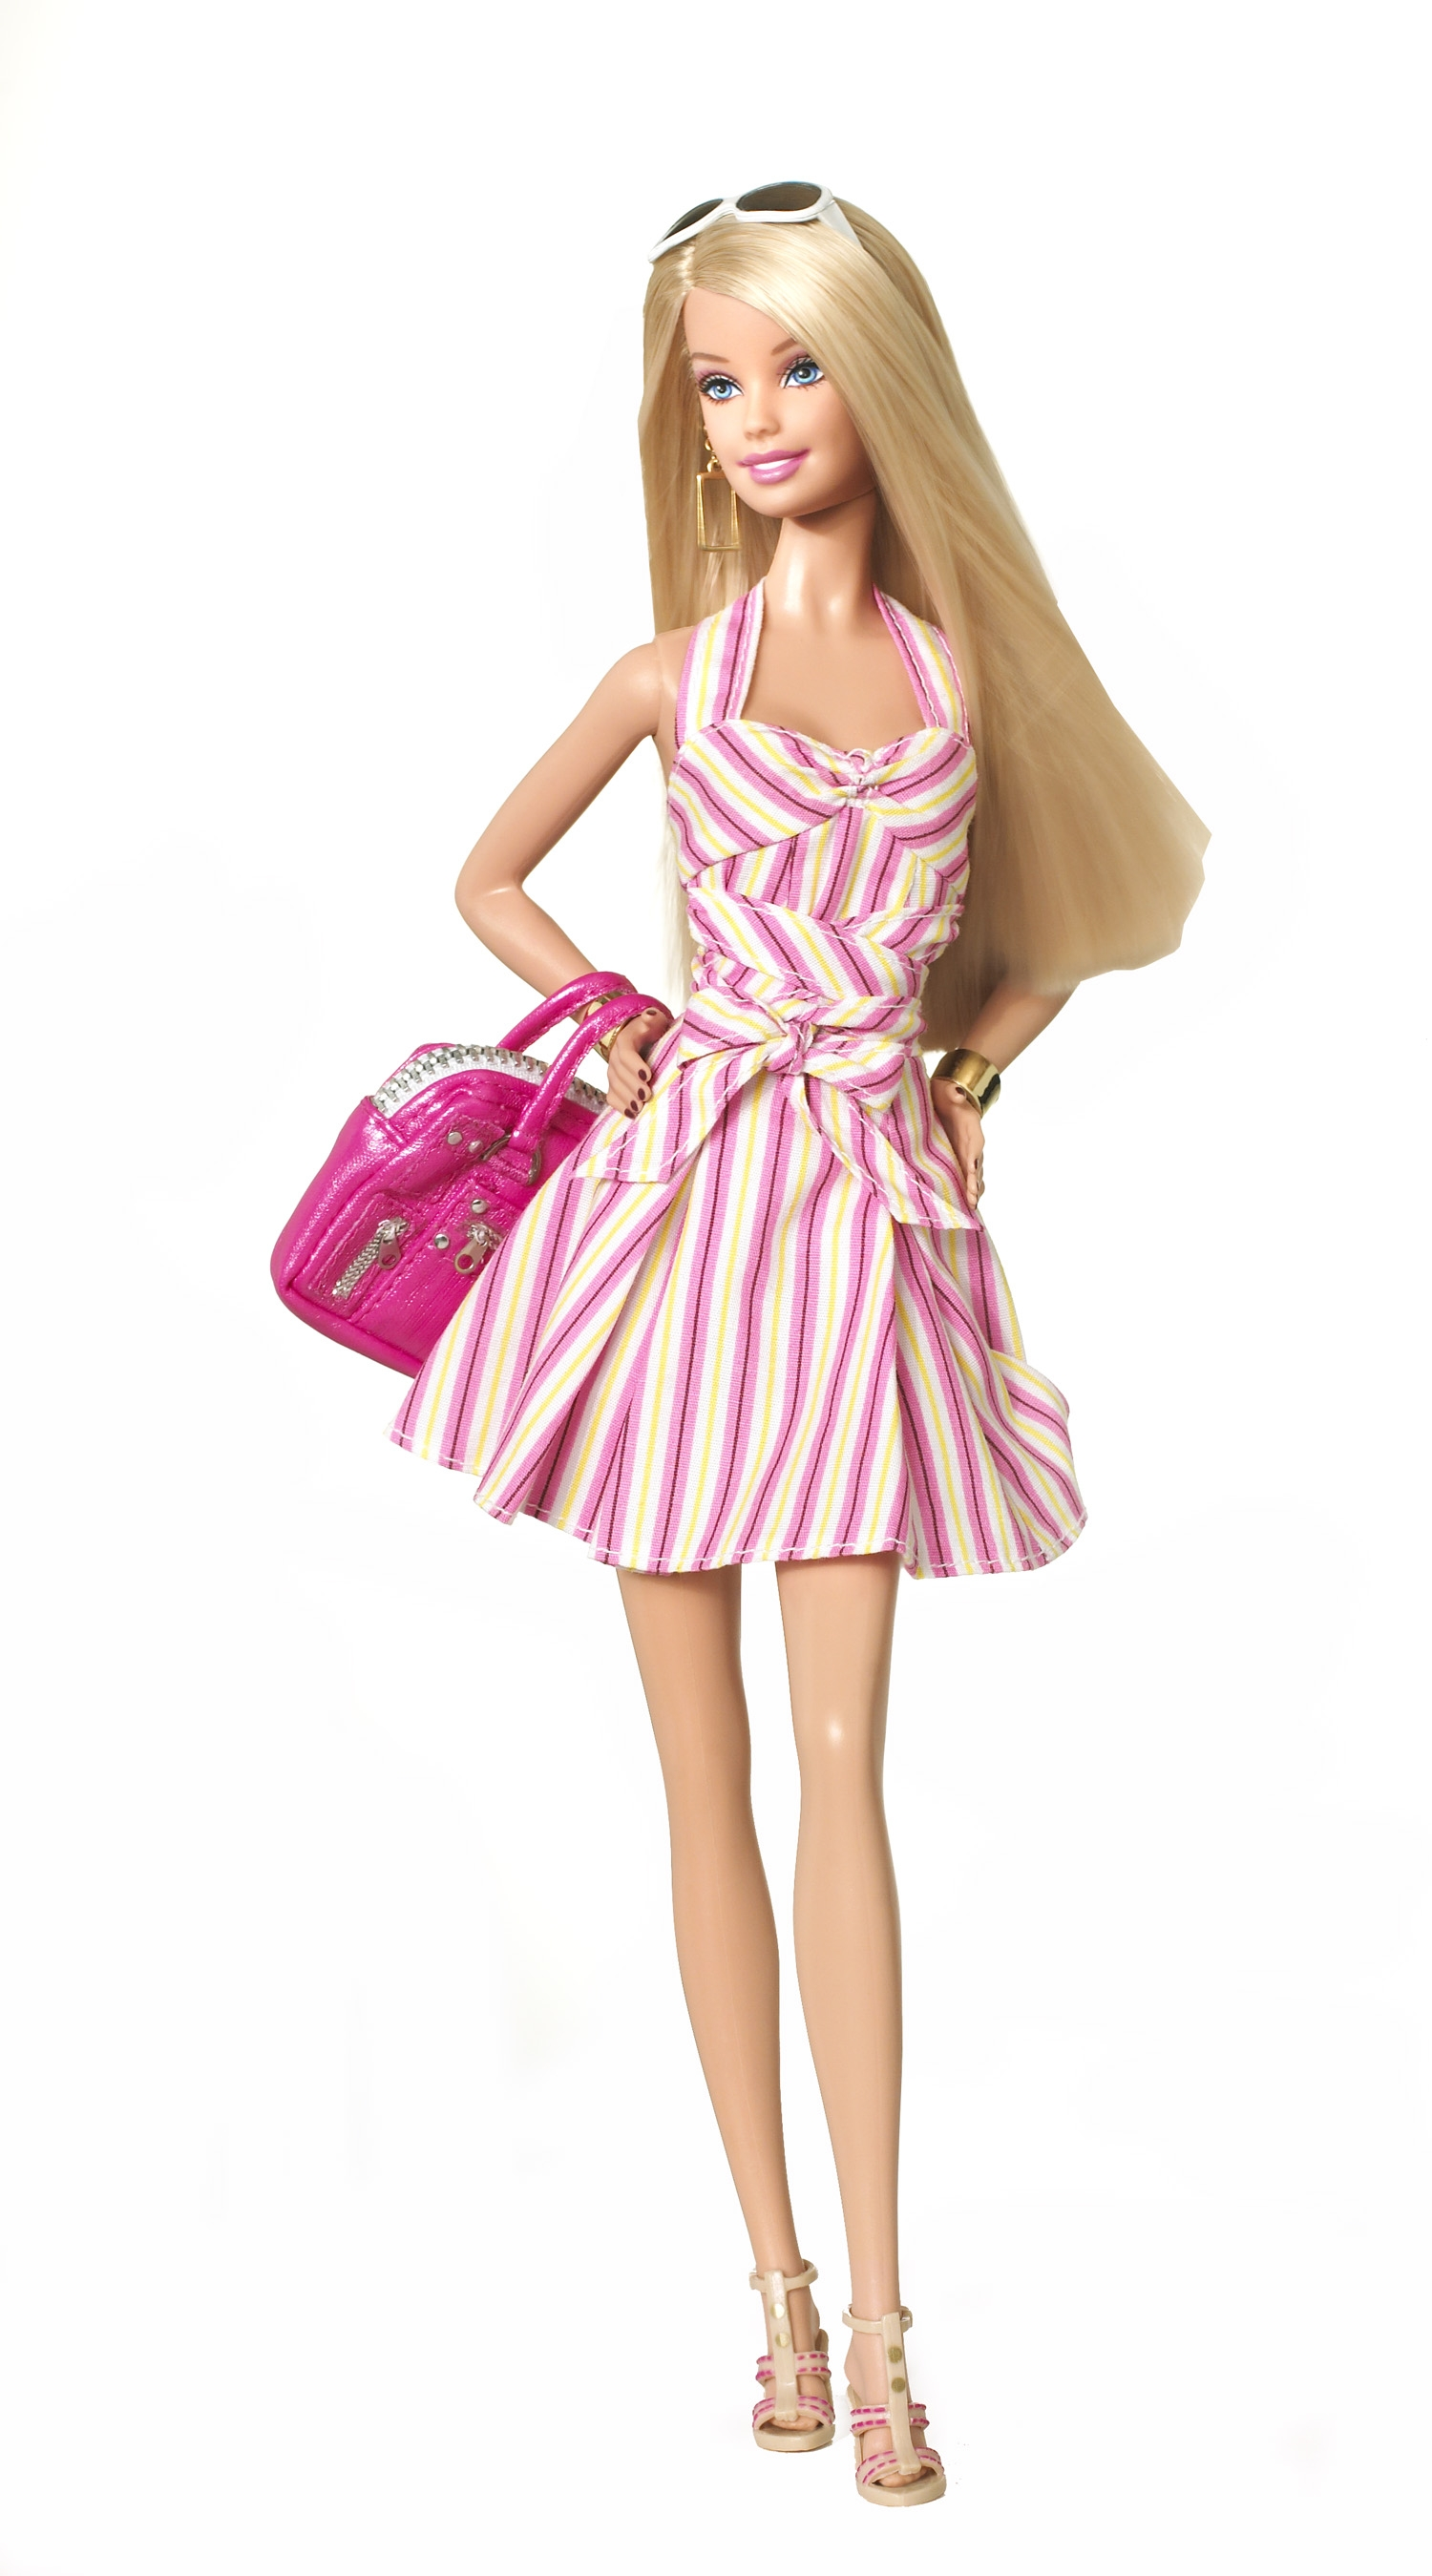 Even The Title Of The Picture Was Called Quintessential Barbie